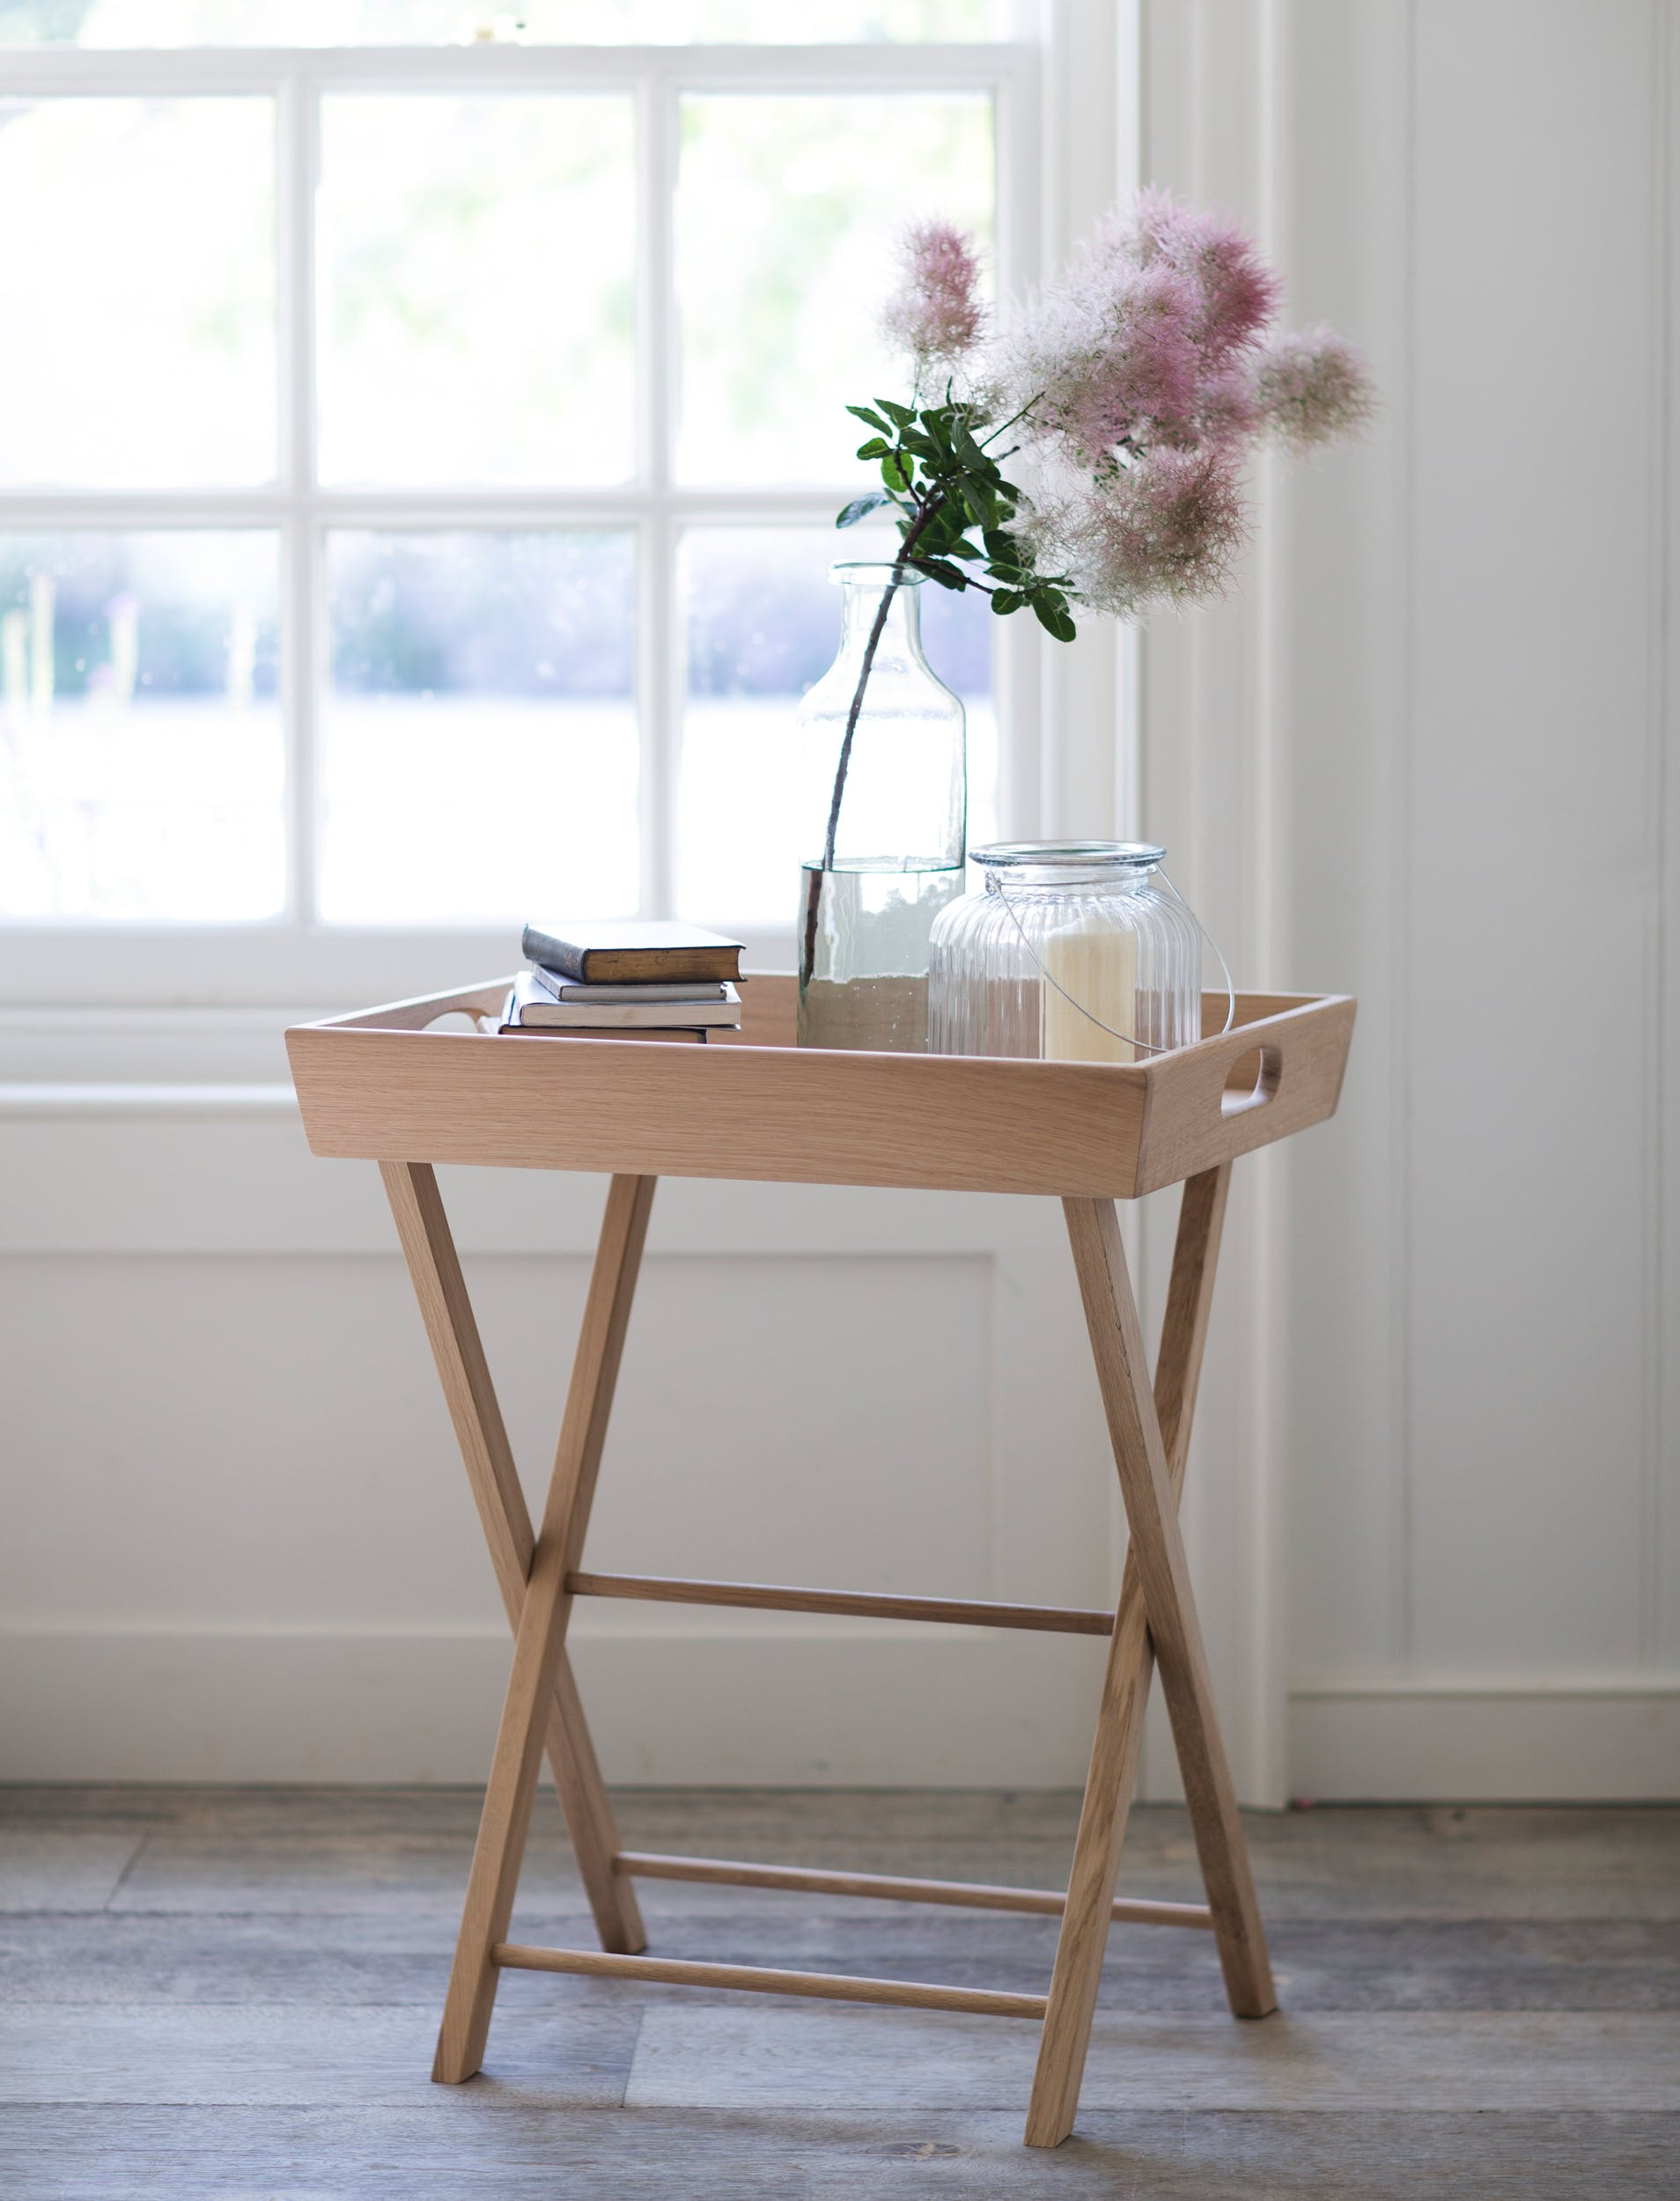 Oak Folding Hambledon Butlers Tray in Small or Large | Garden Trading